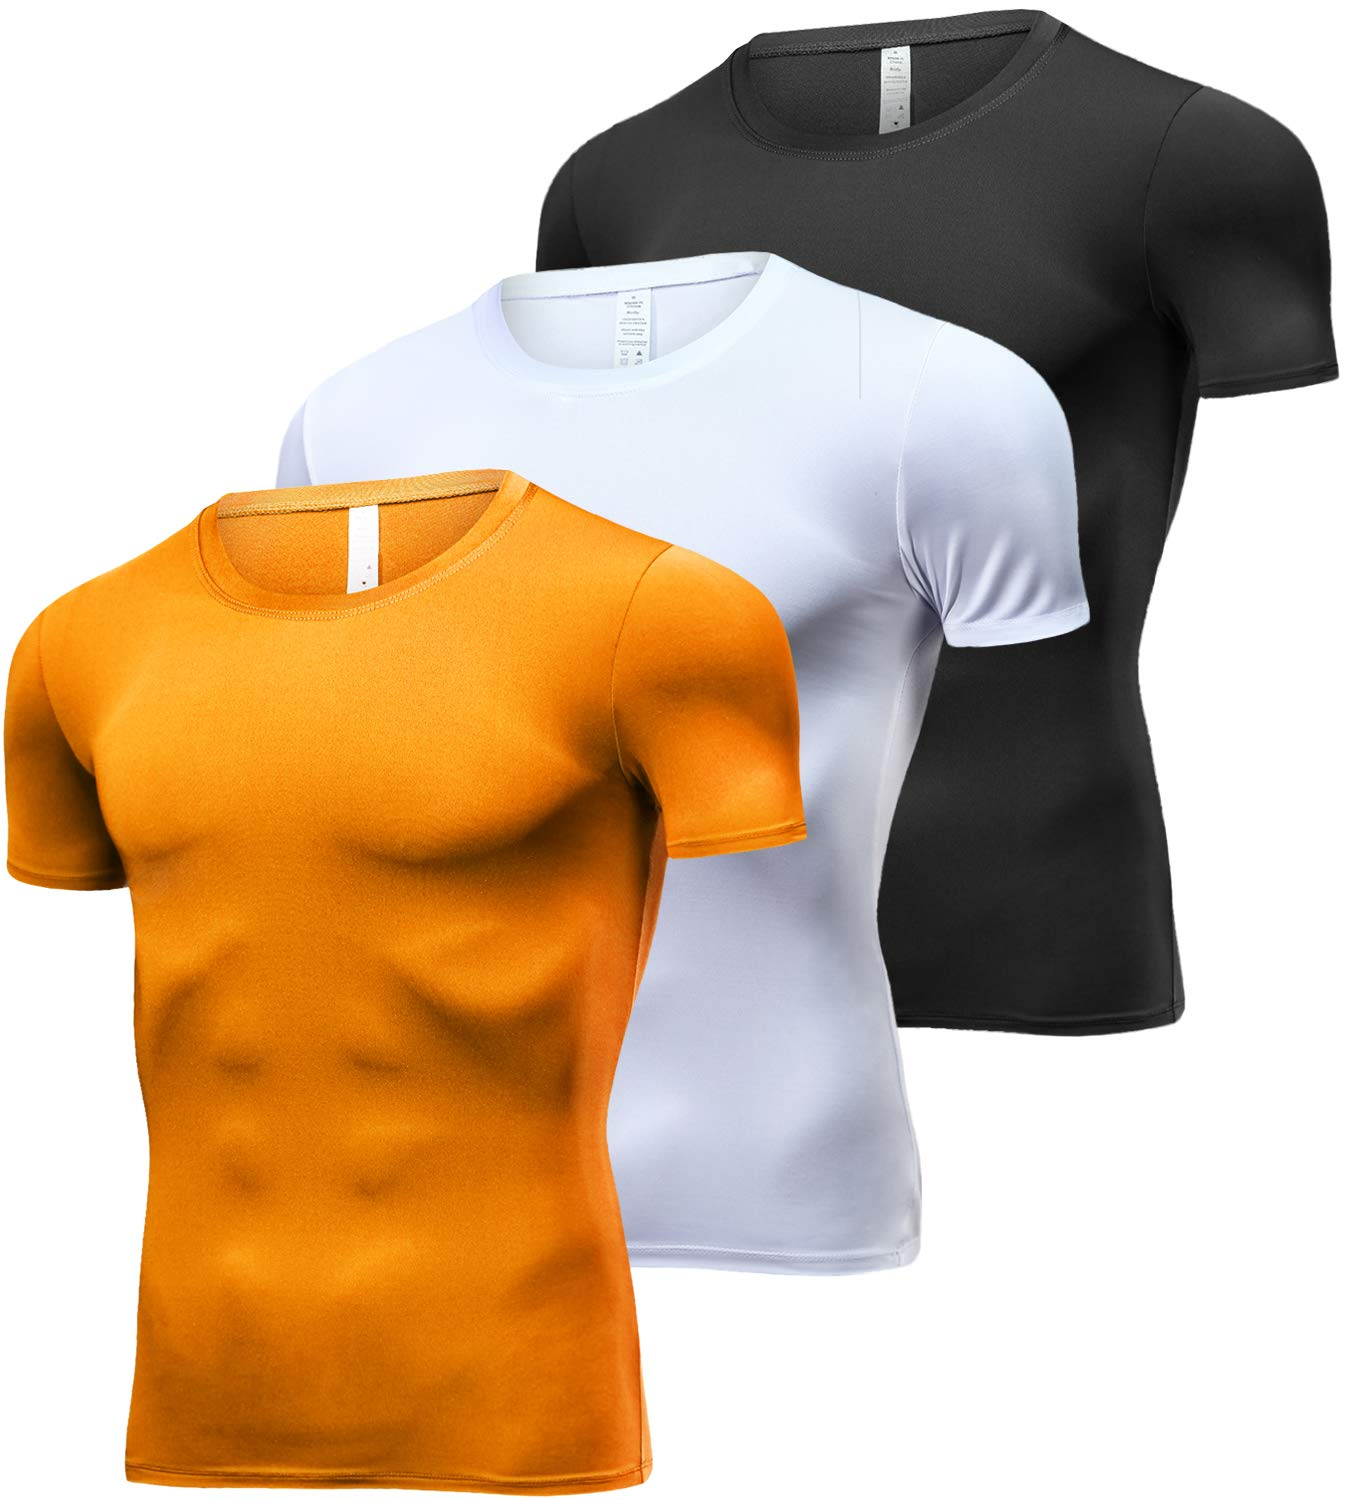 Lavento Men's Cool Dry Compression Shirts Crew Neck Short-Sleeve Workout T-Shirts